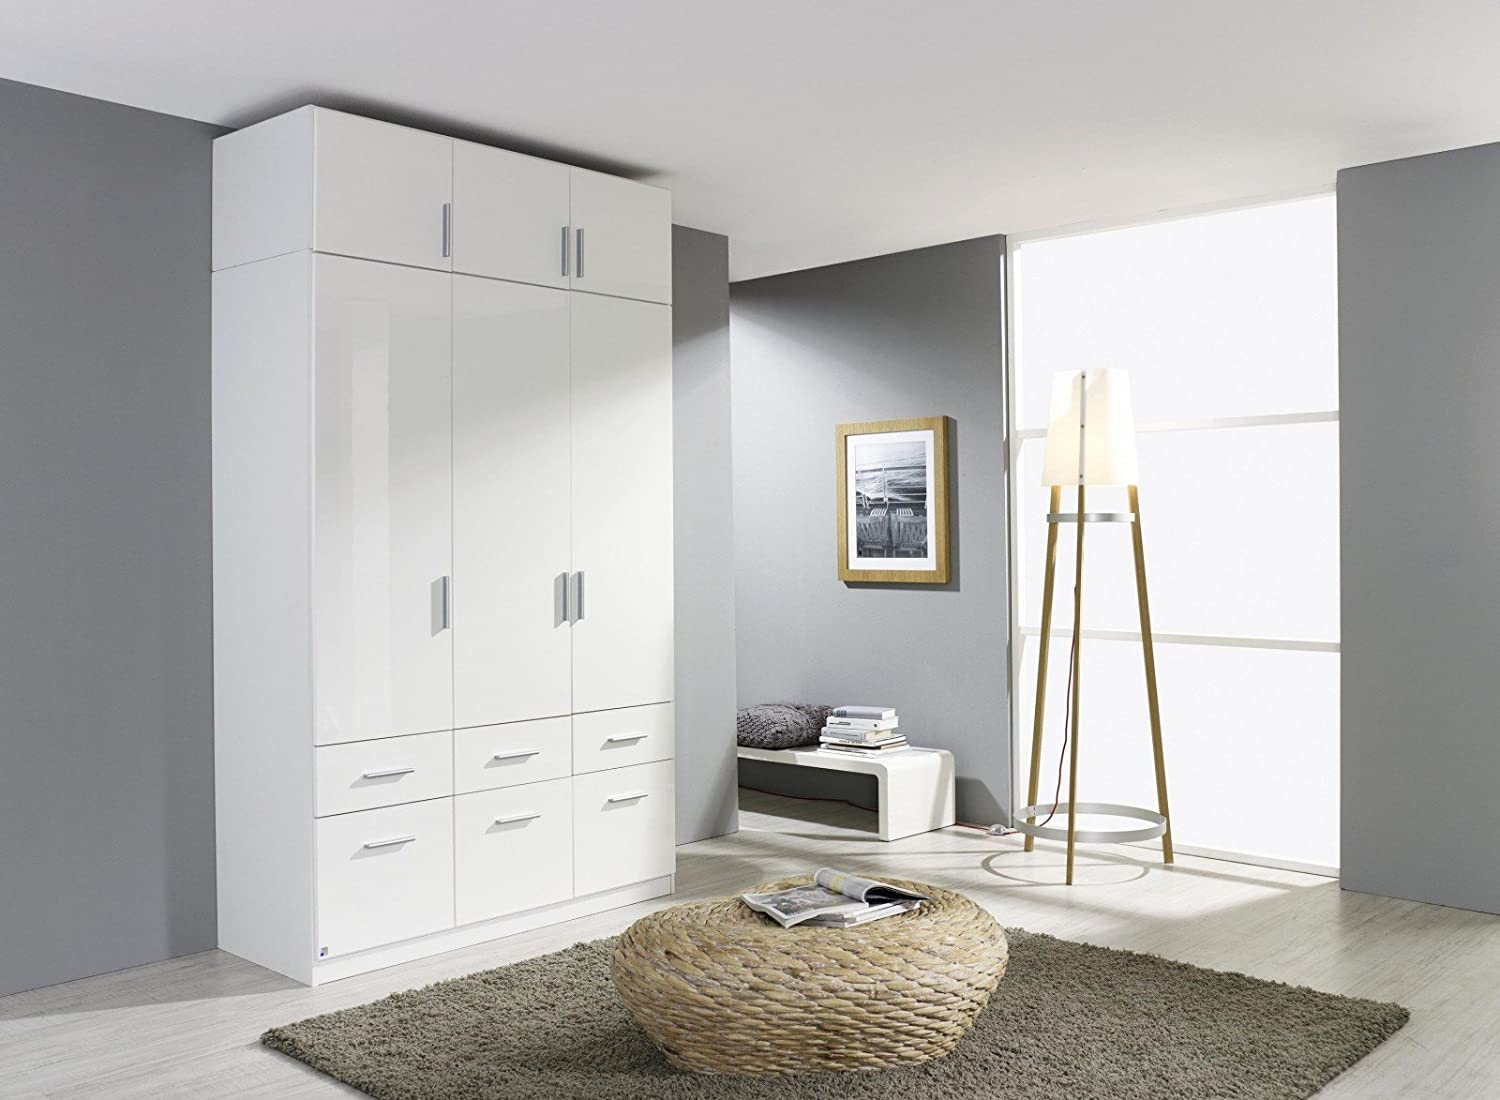 mit aufsatz wei full size of mit aufsatz weiss ikea hemnes afdeckercom gebraucht in wuppertal. Black Bedroom Furniture Sets. Home Design Ideas